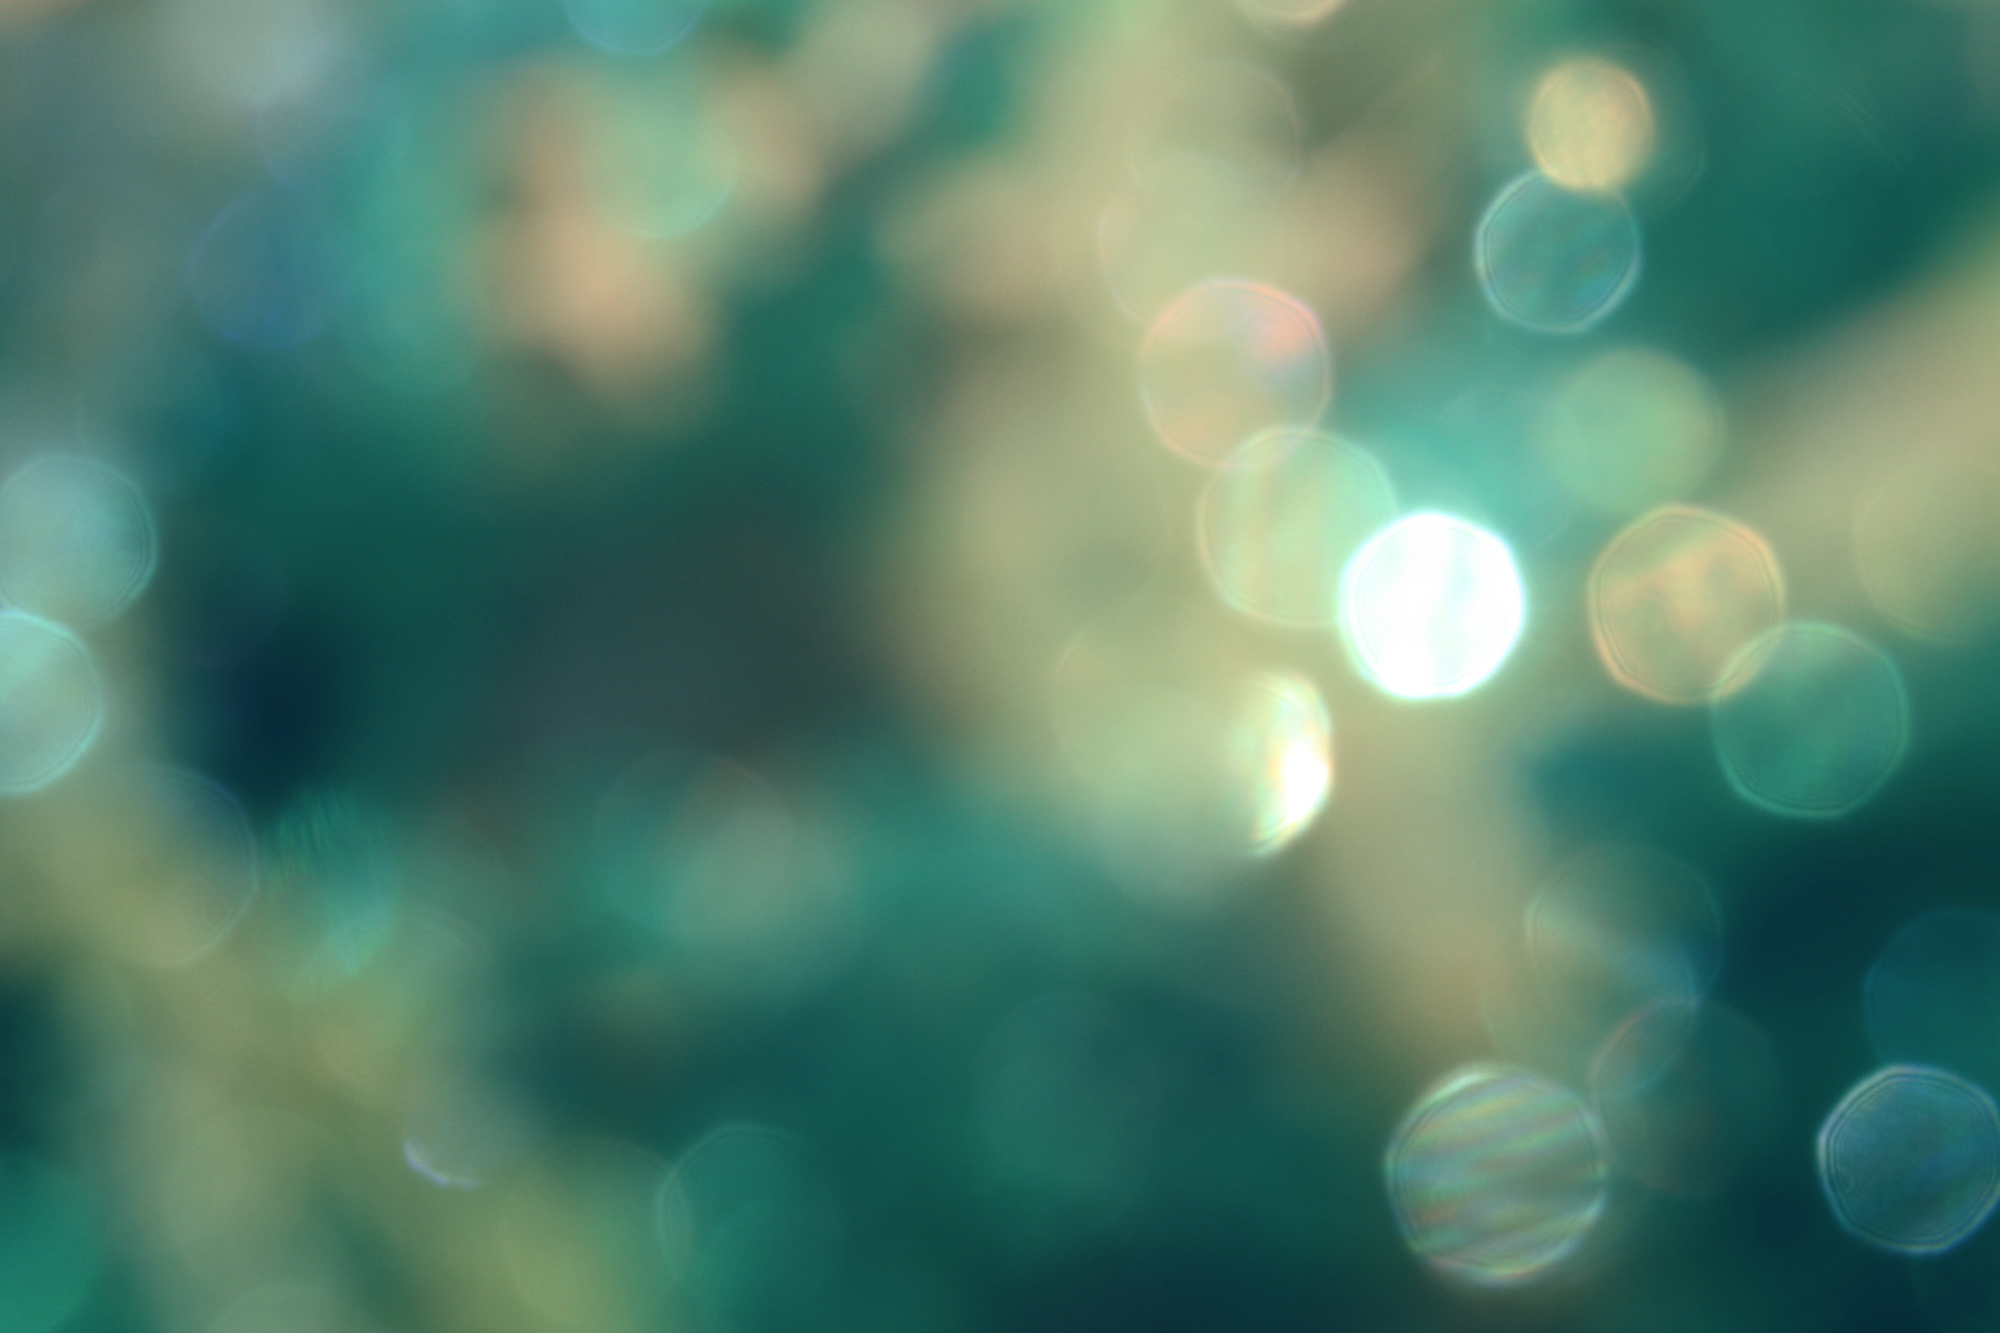 all hd wallpaper bokeh - photo #21